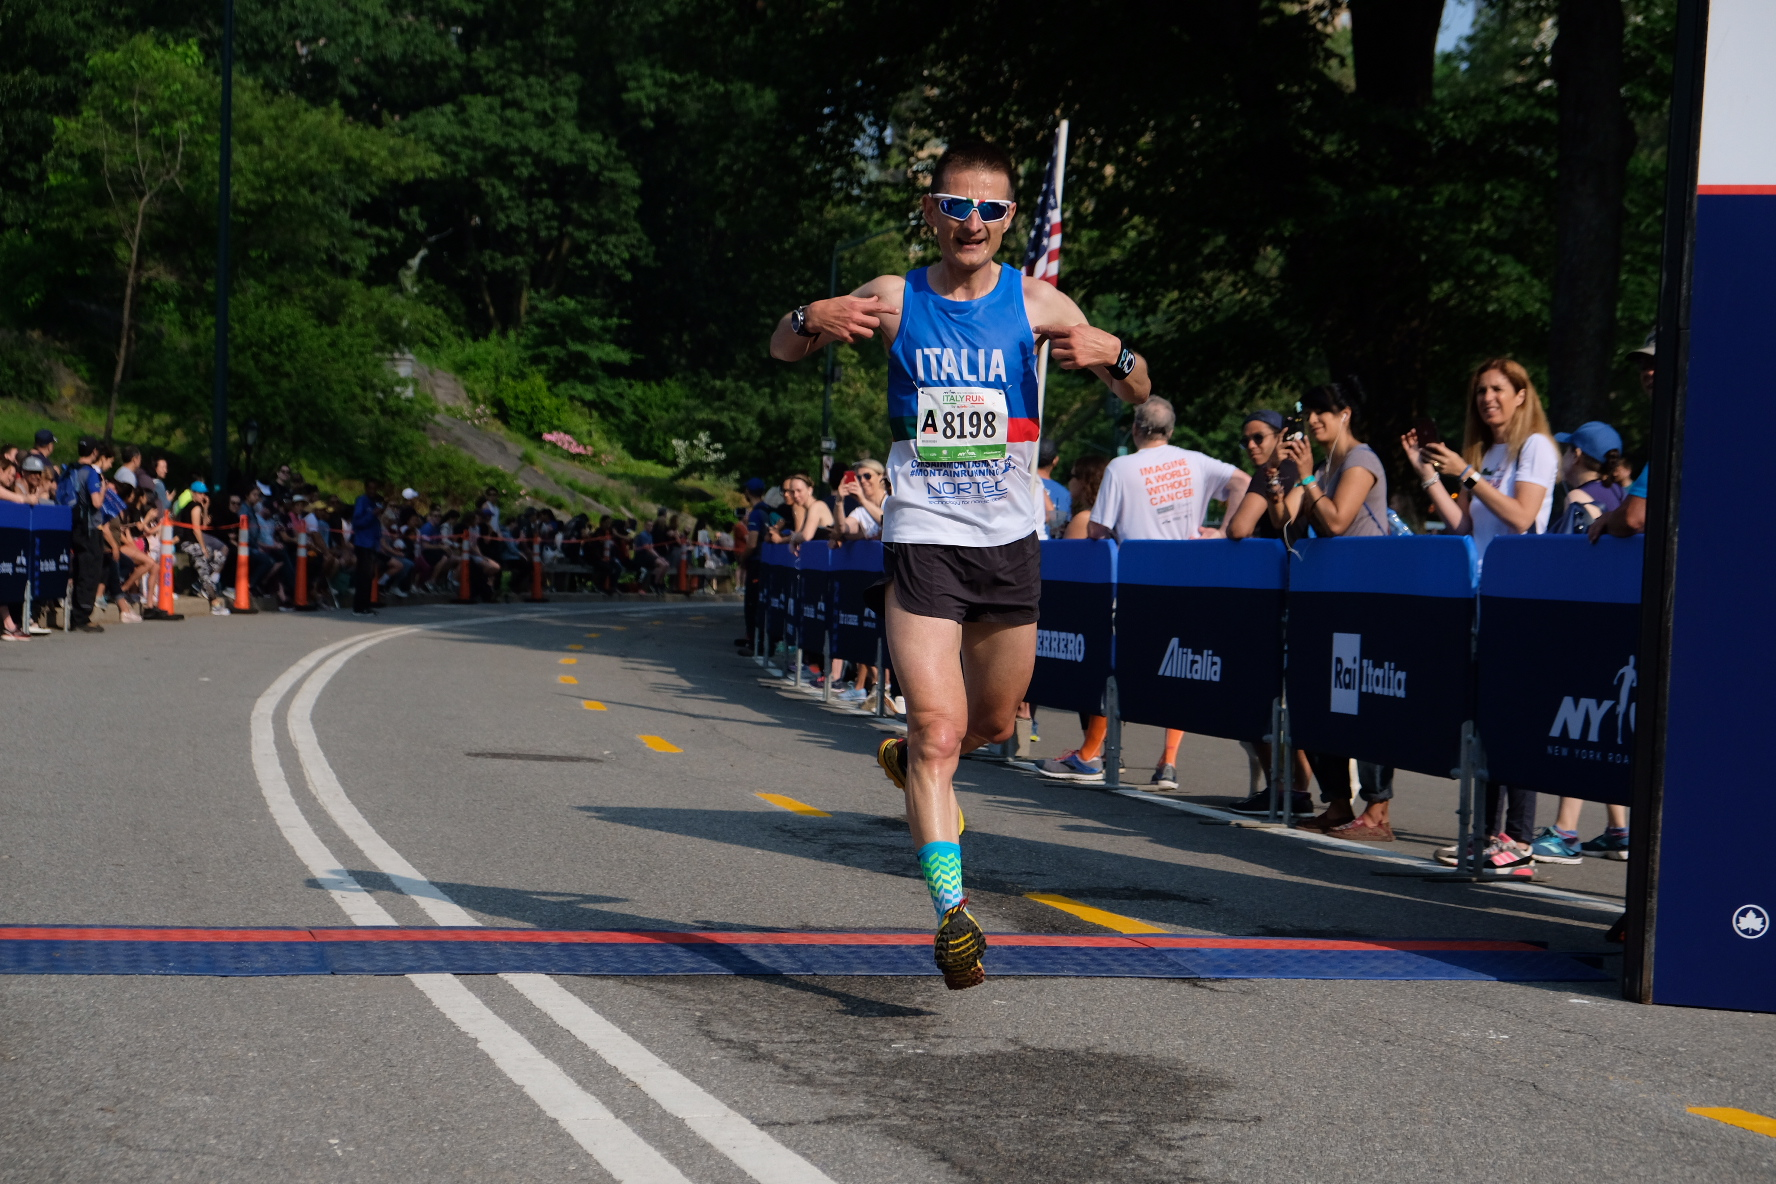 """A man finishing the Italy Run, wearing a singlet that says """"Italia"""""""